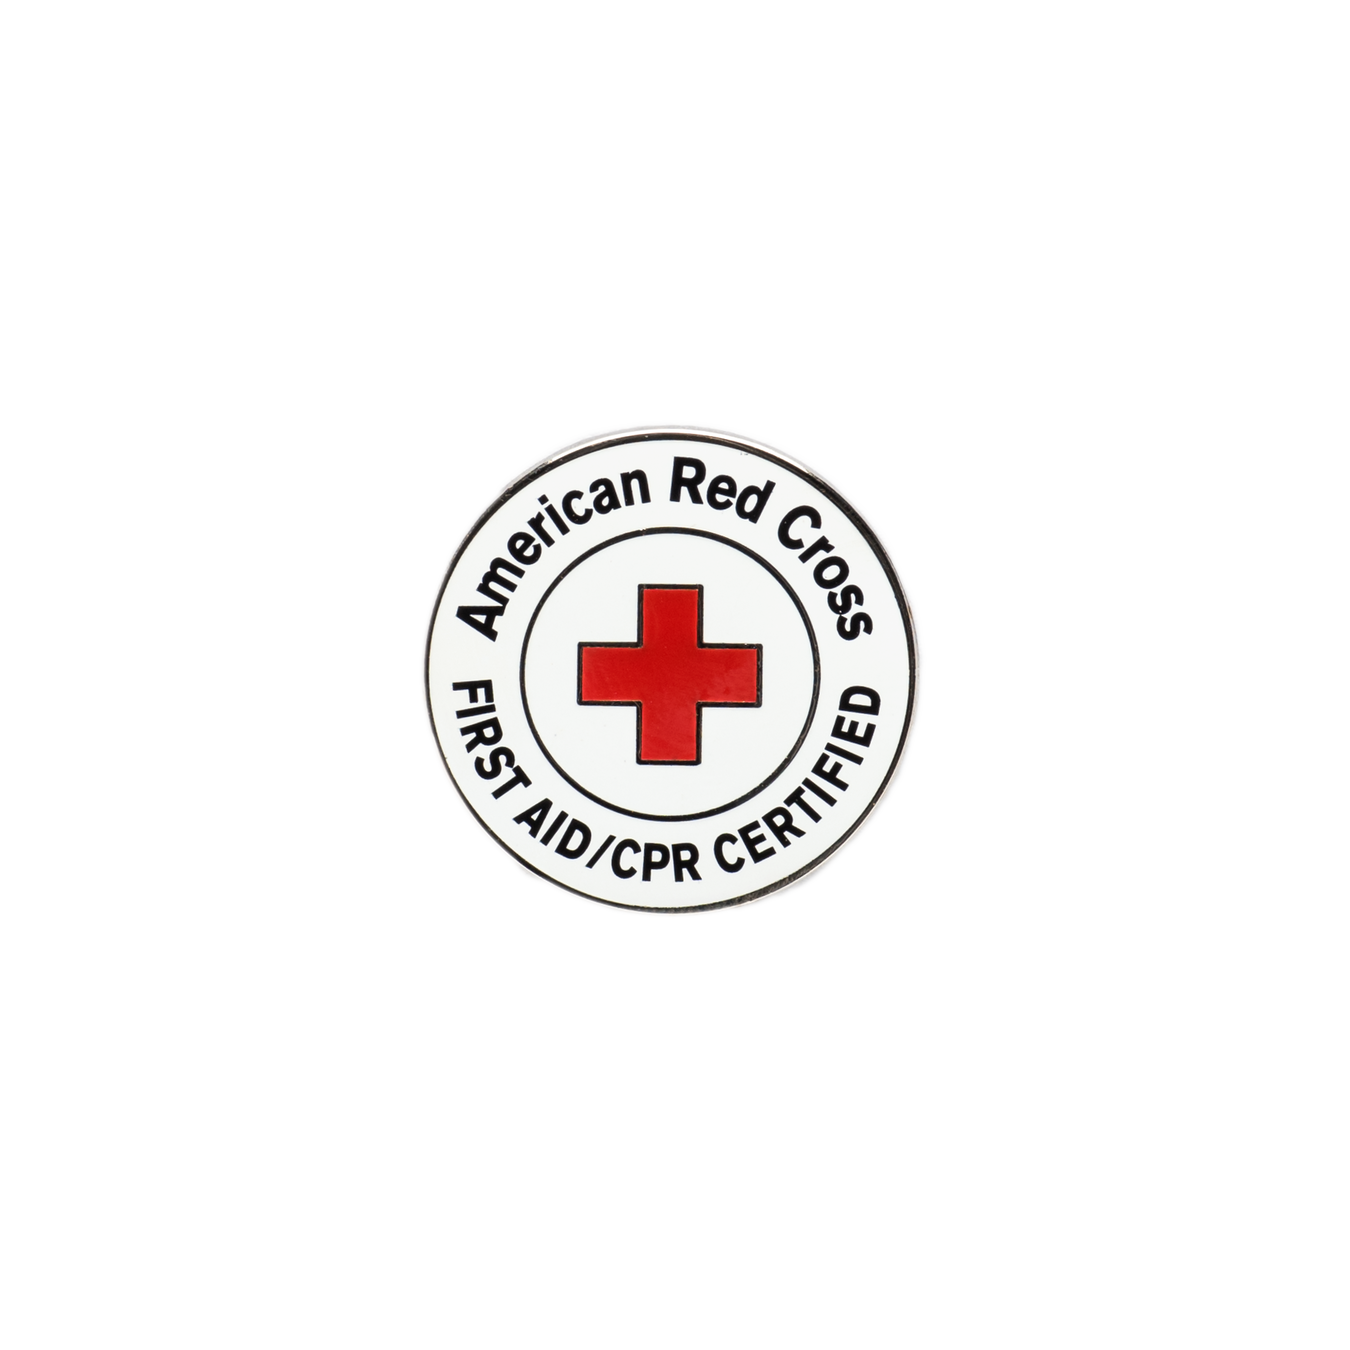 Red Cross First Aid/CPR Certified Lapel Pin Pk/10